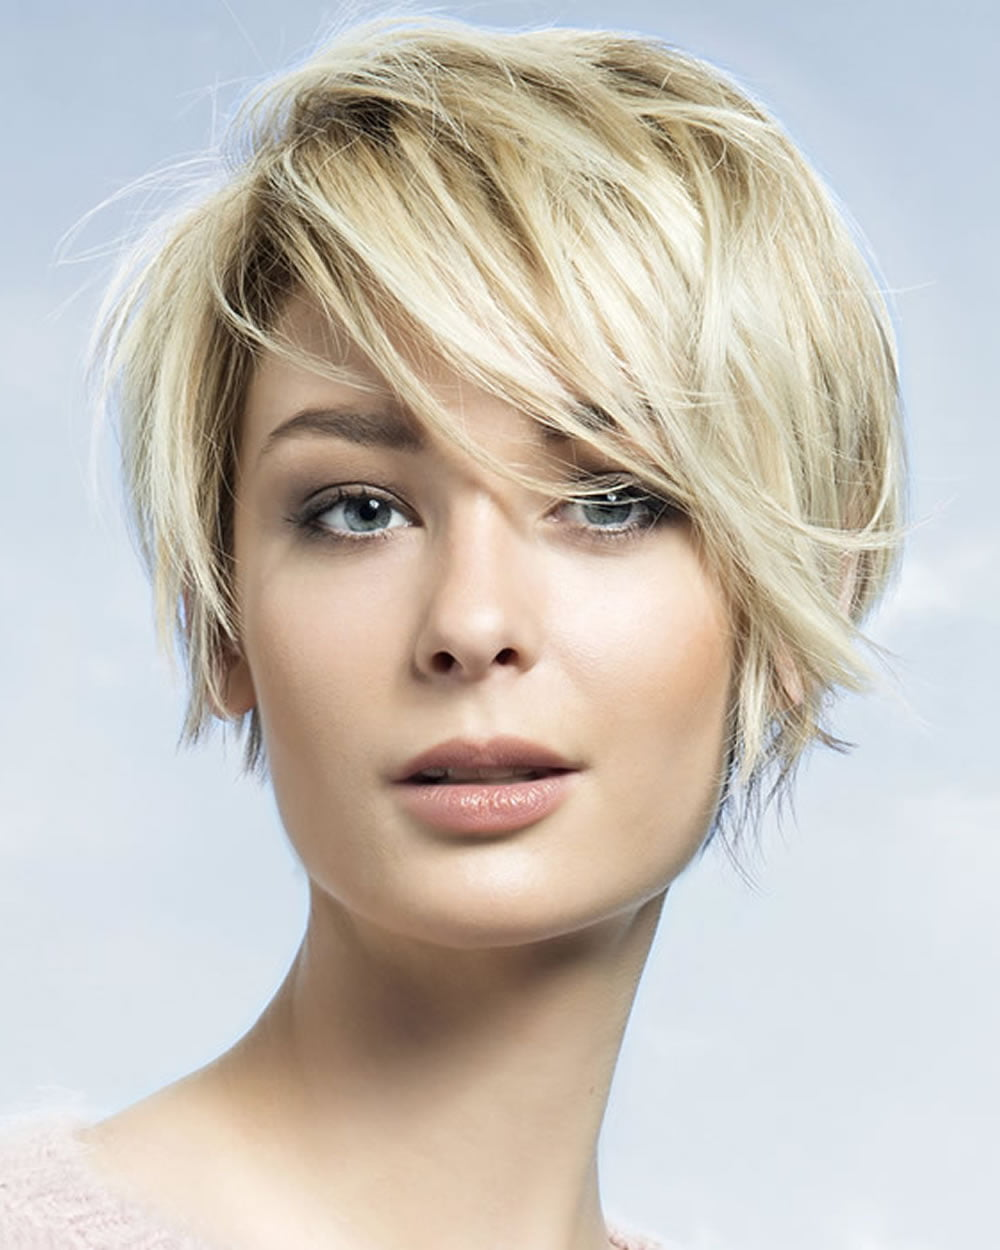 Latest Short Haircuts for Women: Curly, Wavy, Straight Hair Ideas ...